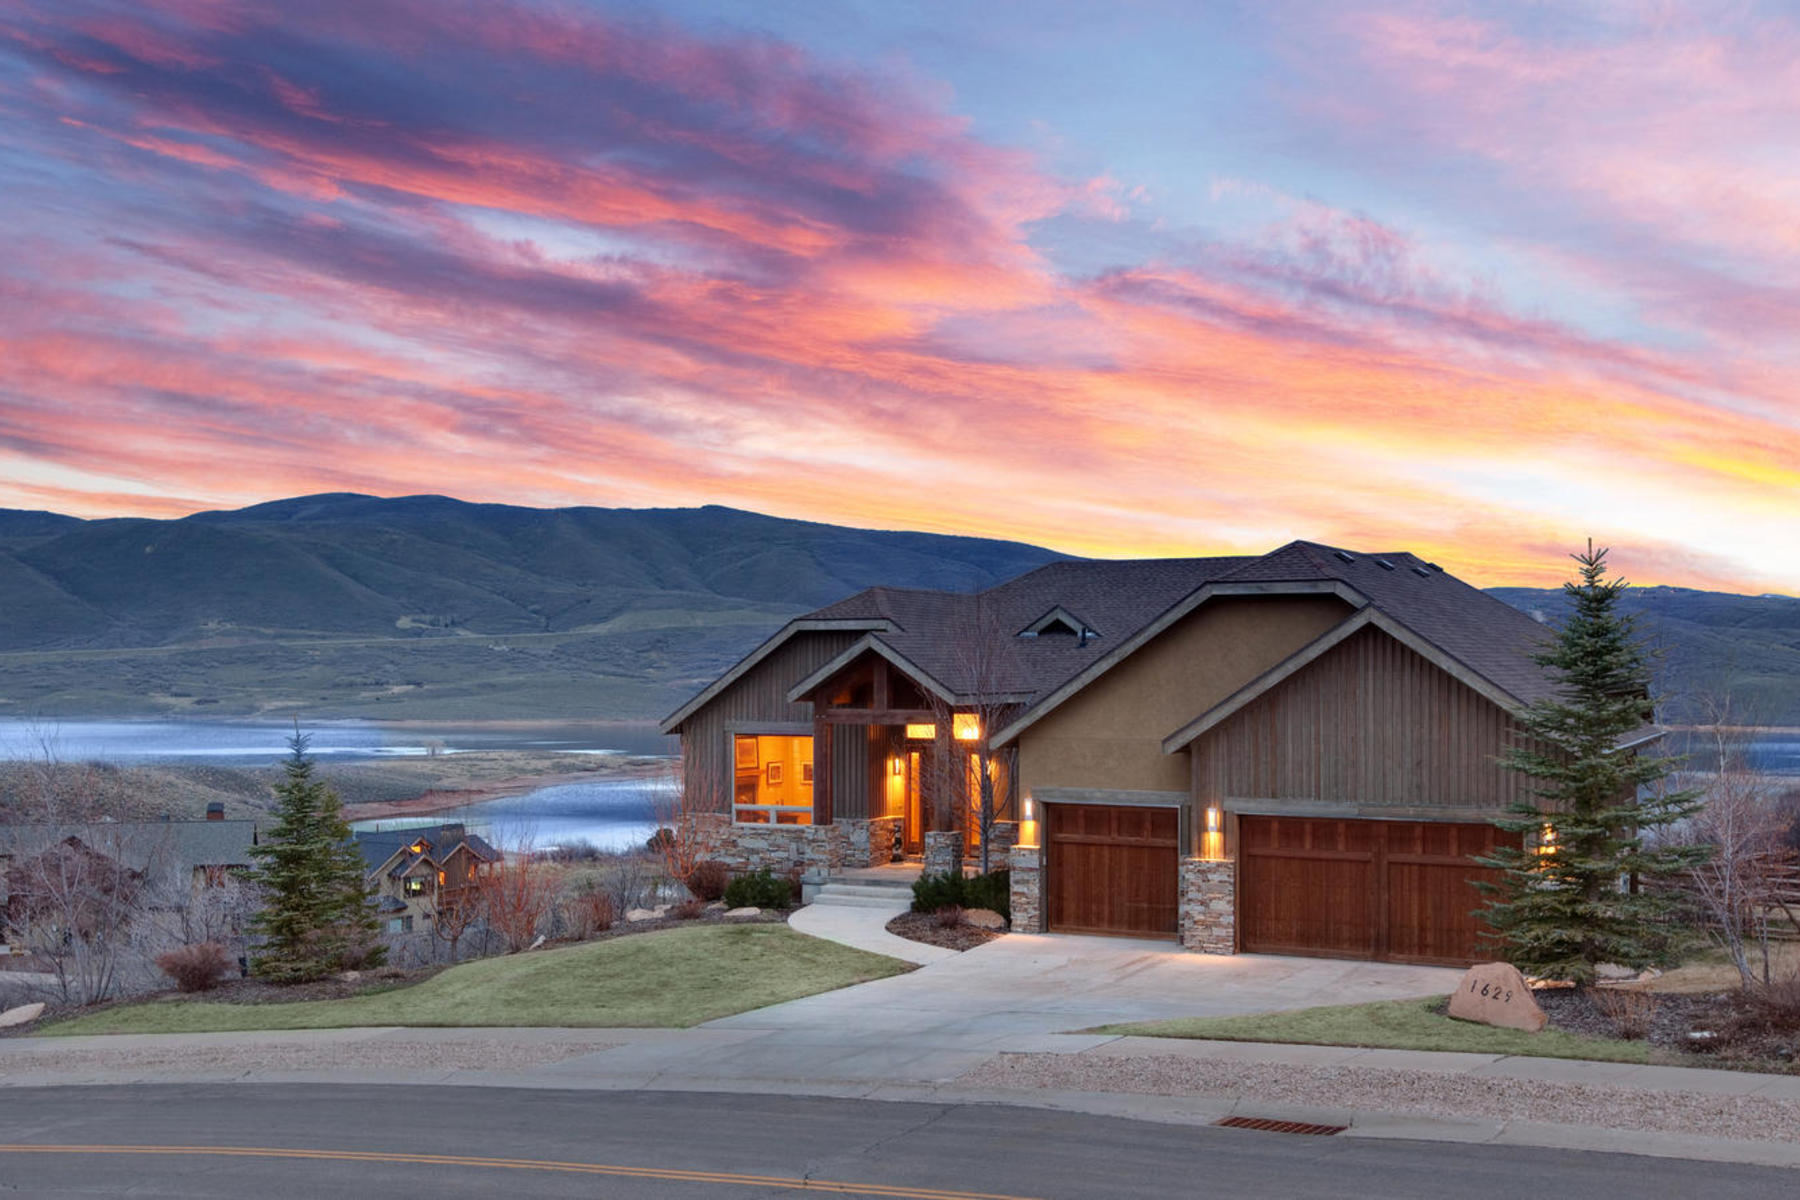 Single Family Home for Sale at Extraordinary Jordanelle Views! 1629 Alpine Ave Heber City, Utah, 84032 United States